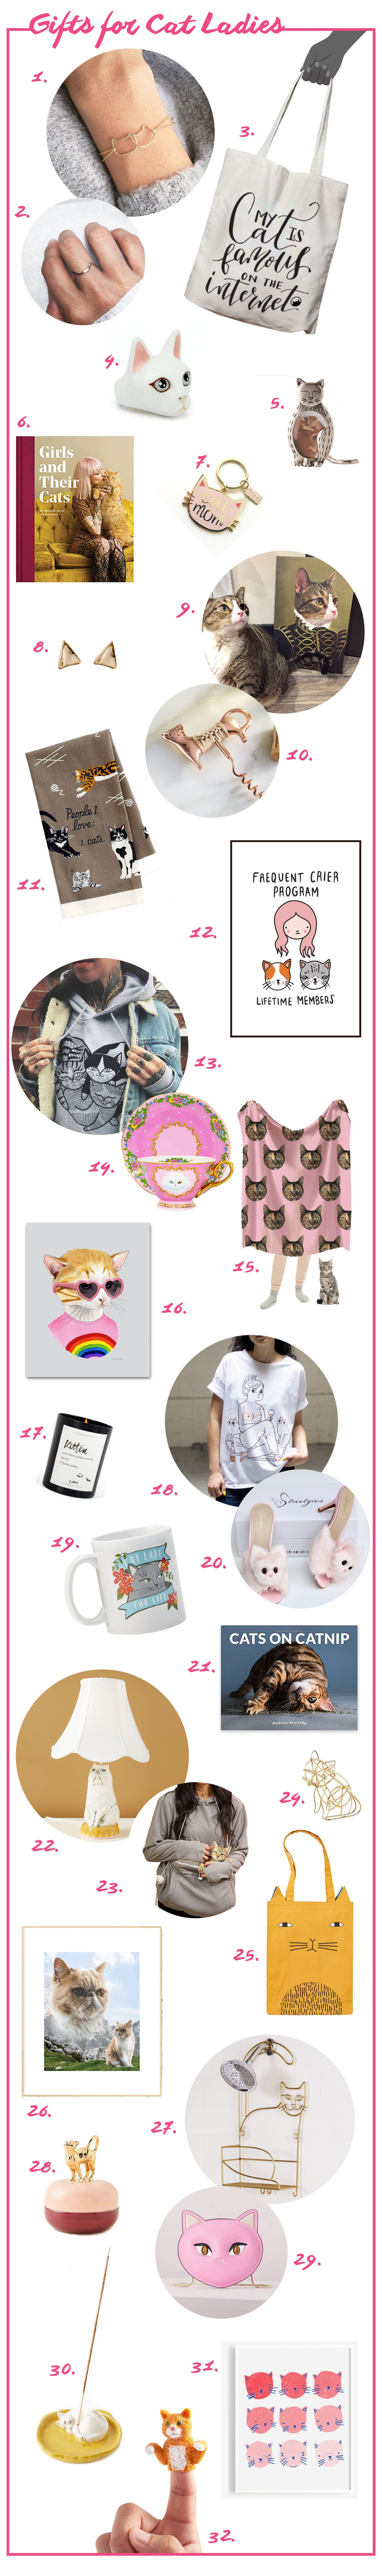 Ridiculous cat gifts for cat ladies and the cats they love. Presents cat people including cat shaped jewelry, custom portraits, cat books, cat mugs, and more.